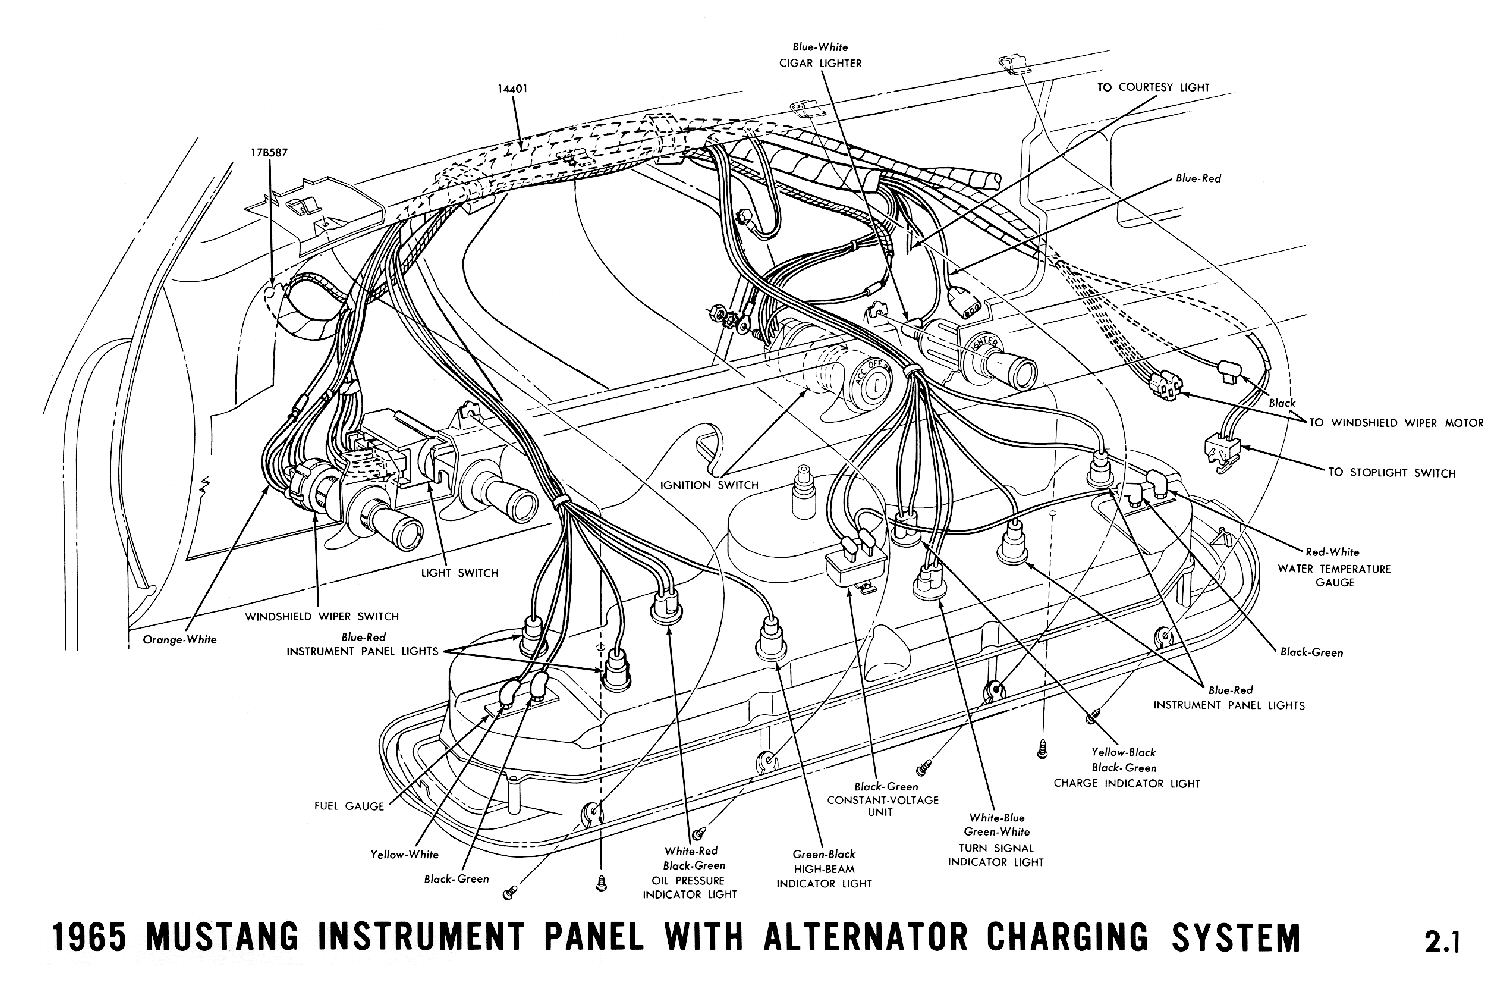 1965 wiring that goes to starter solenoid with 686489 Gas Gauge Wiring 3 on 1969 Cadillac Deville Vacuum Diagram besides Suggested Wiring Diagram Alternator further 1971 Ford Mustang Wiring Harness in addition Ford 5 4 Liter Engine Diagrams And Schematics furthermore 686489 Gas Gauge Wiring 3.